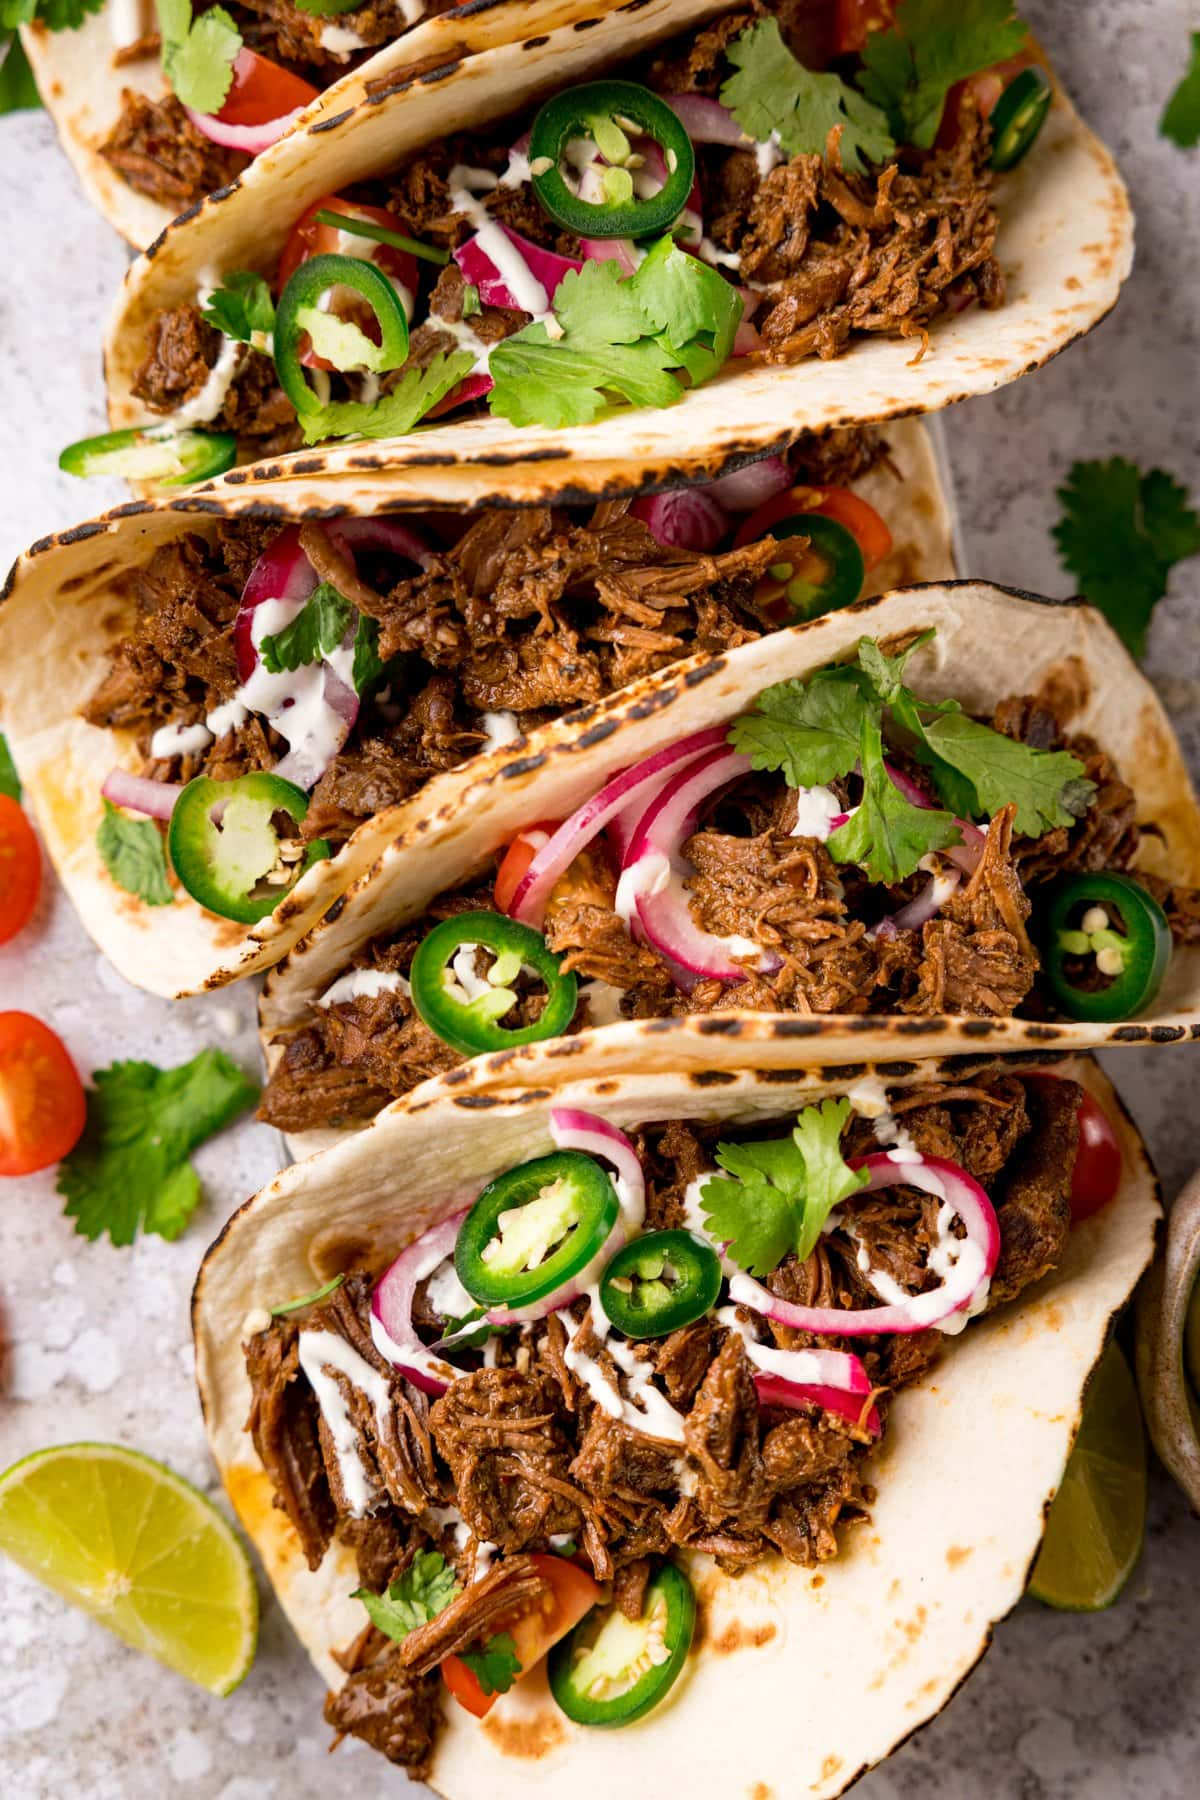 Overhead image of beef barbacoa tacos lined up on a light background